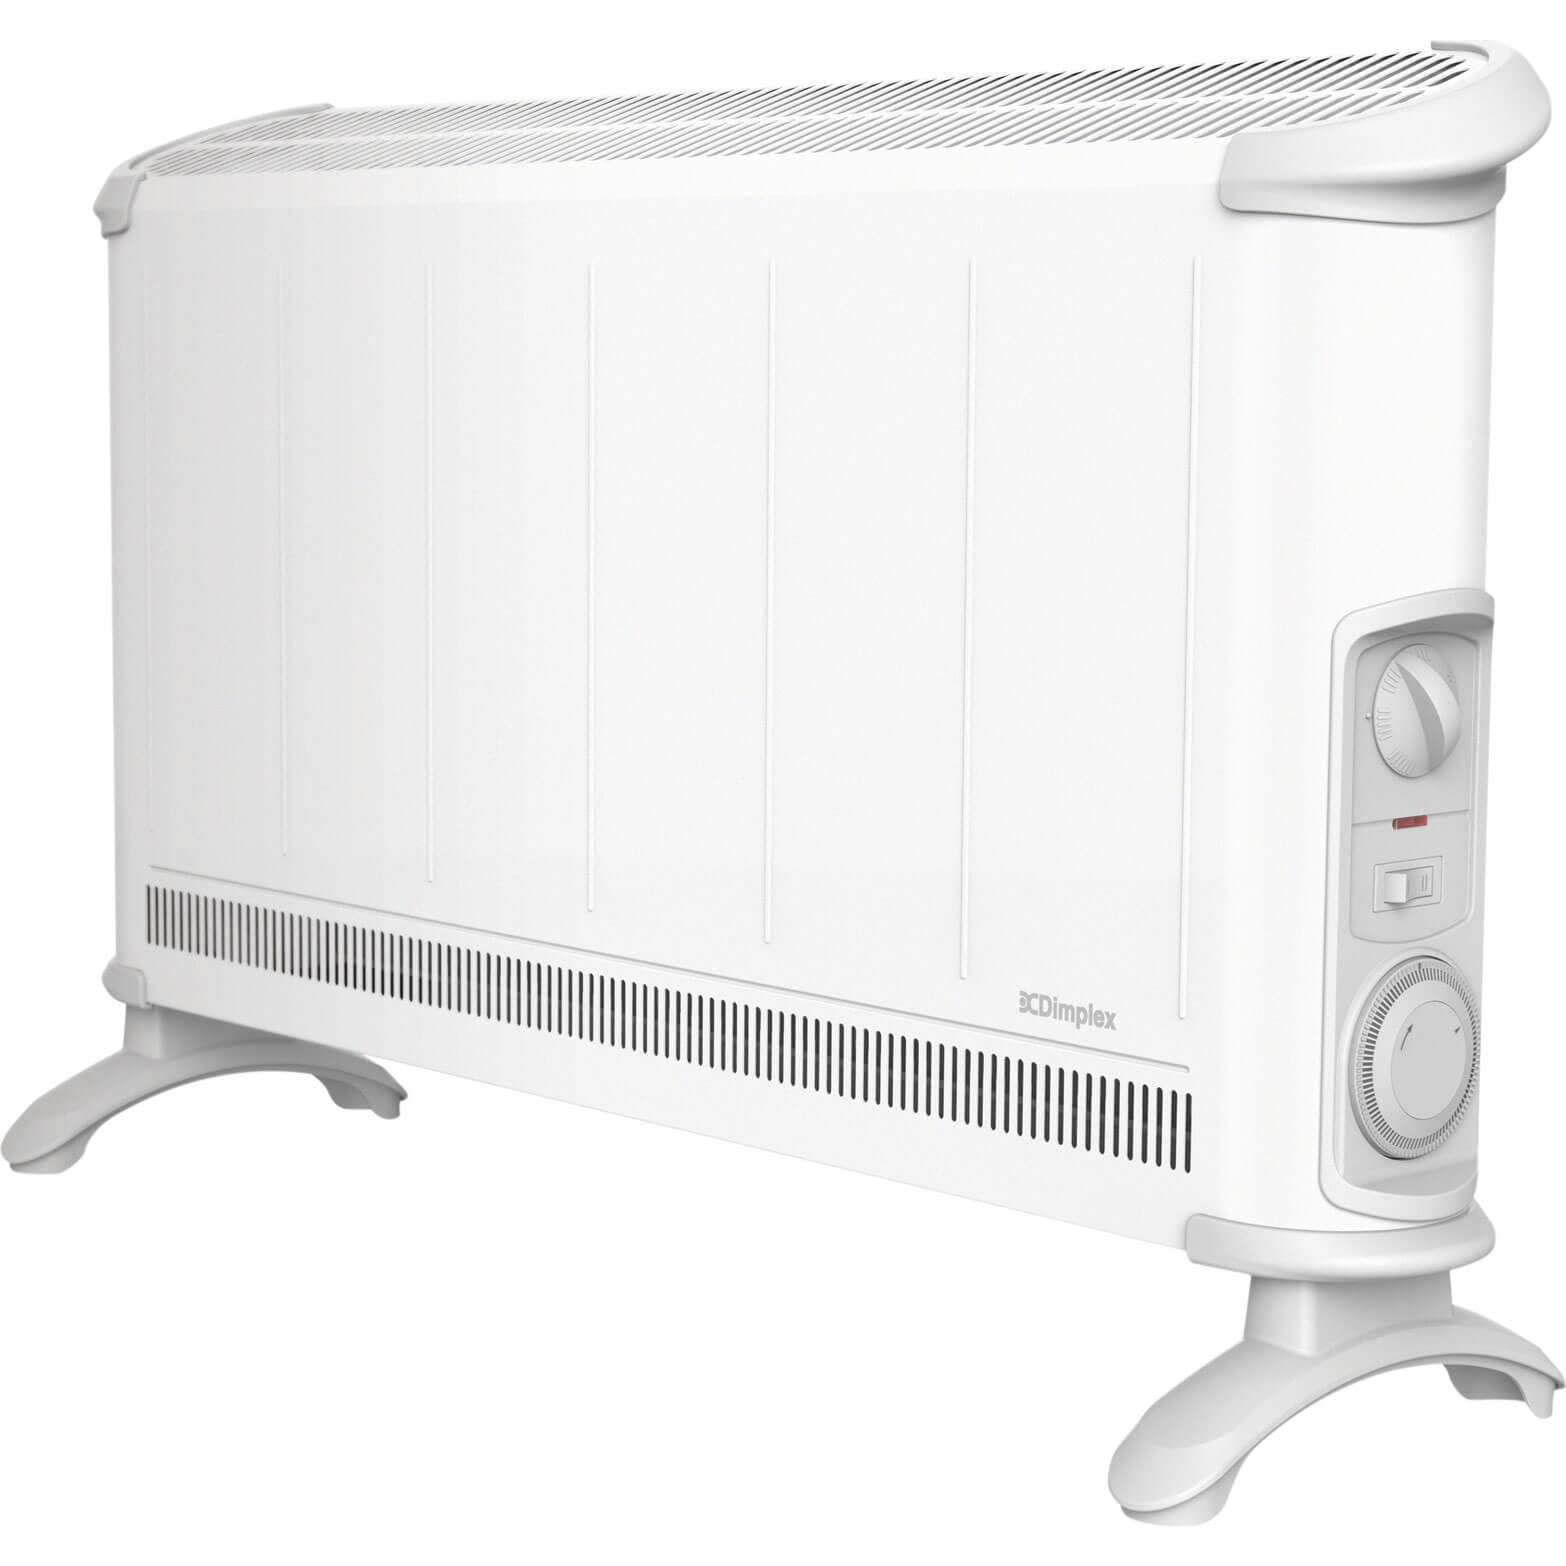 Image of Dimplex 403TSTI Convector Heater & Thermostat / Timer 3000w